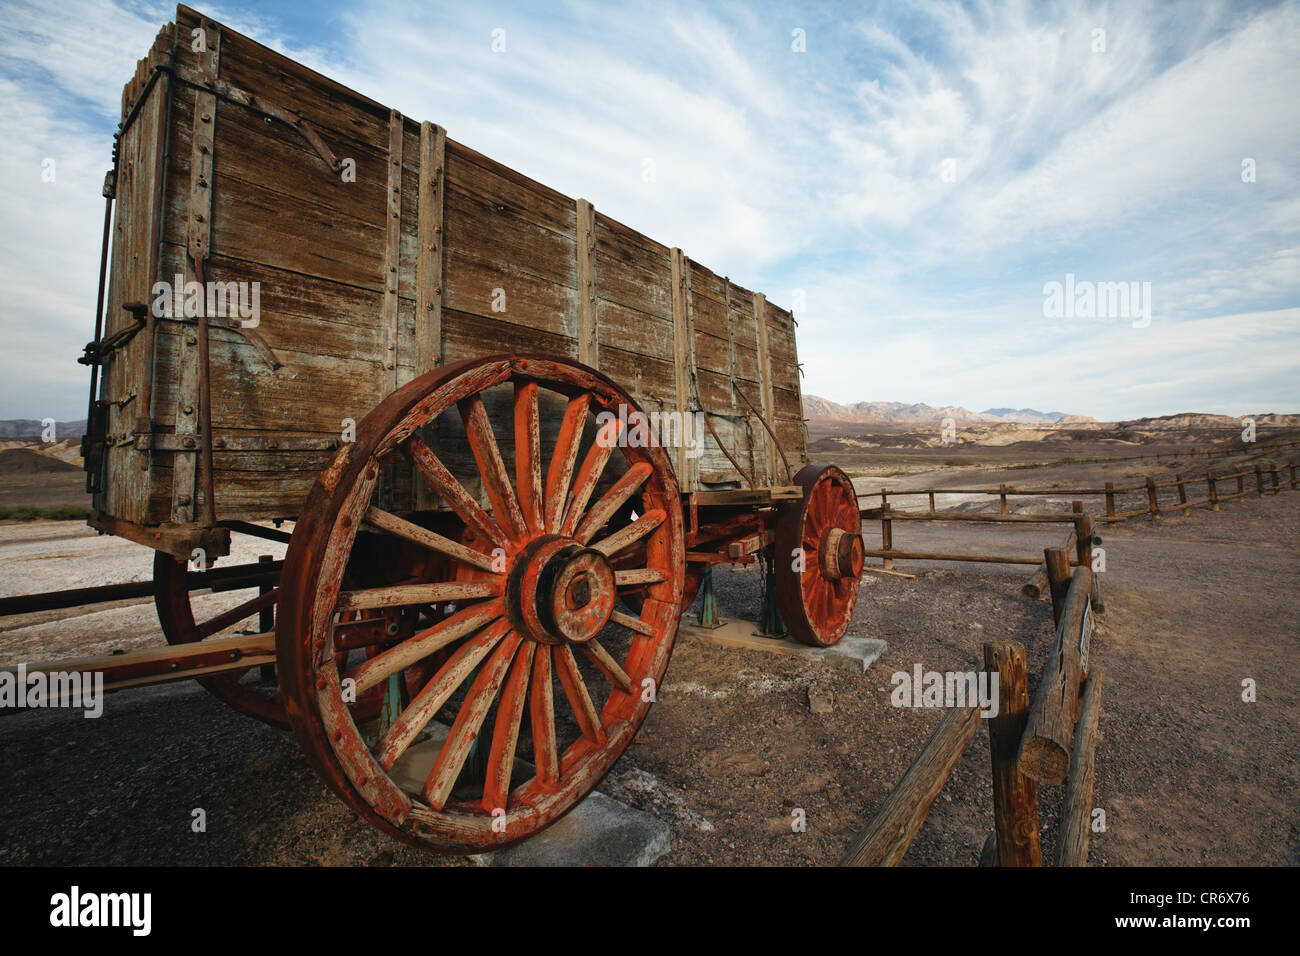 Low Angle Close Up View of a Wooden Wagon for Borax Transport, Harmony Borax Work, Detah Valley, California - Stock Image